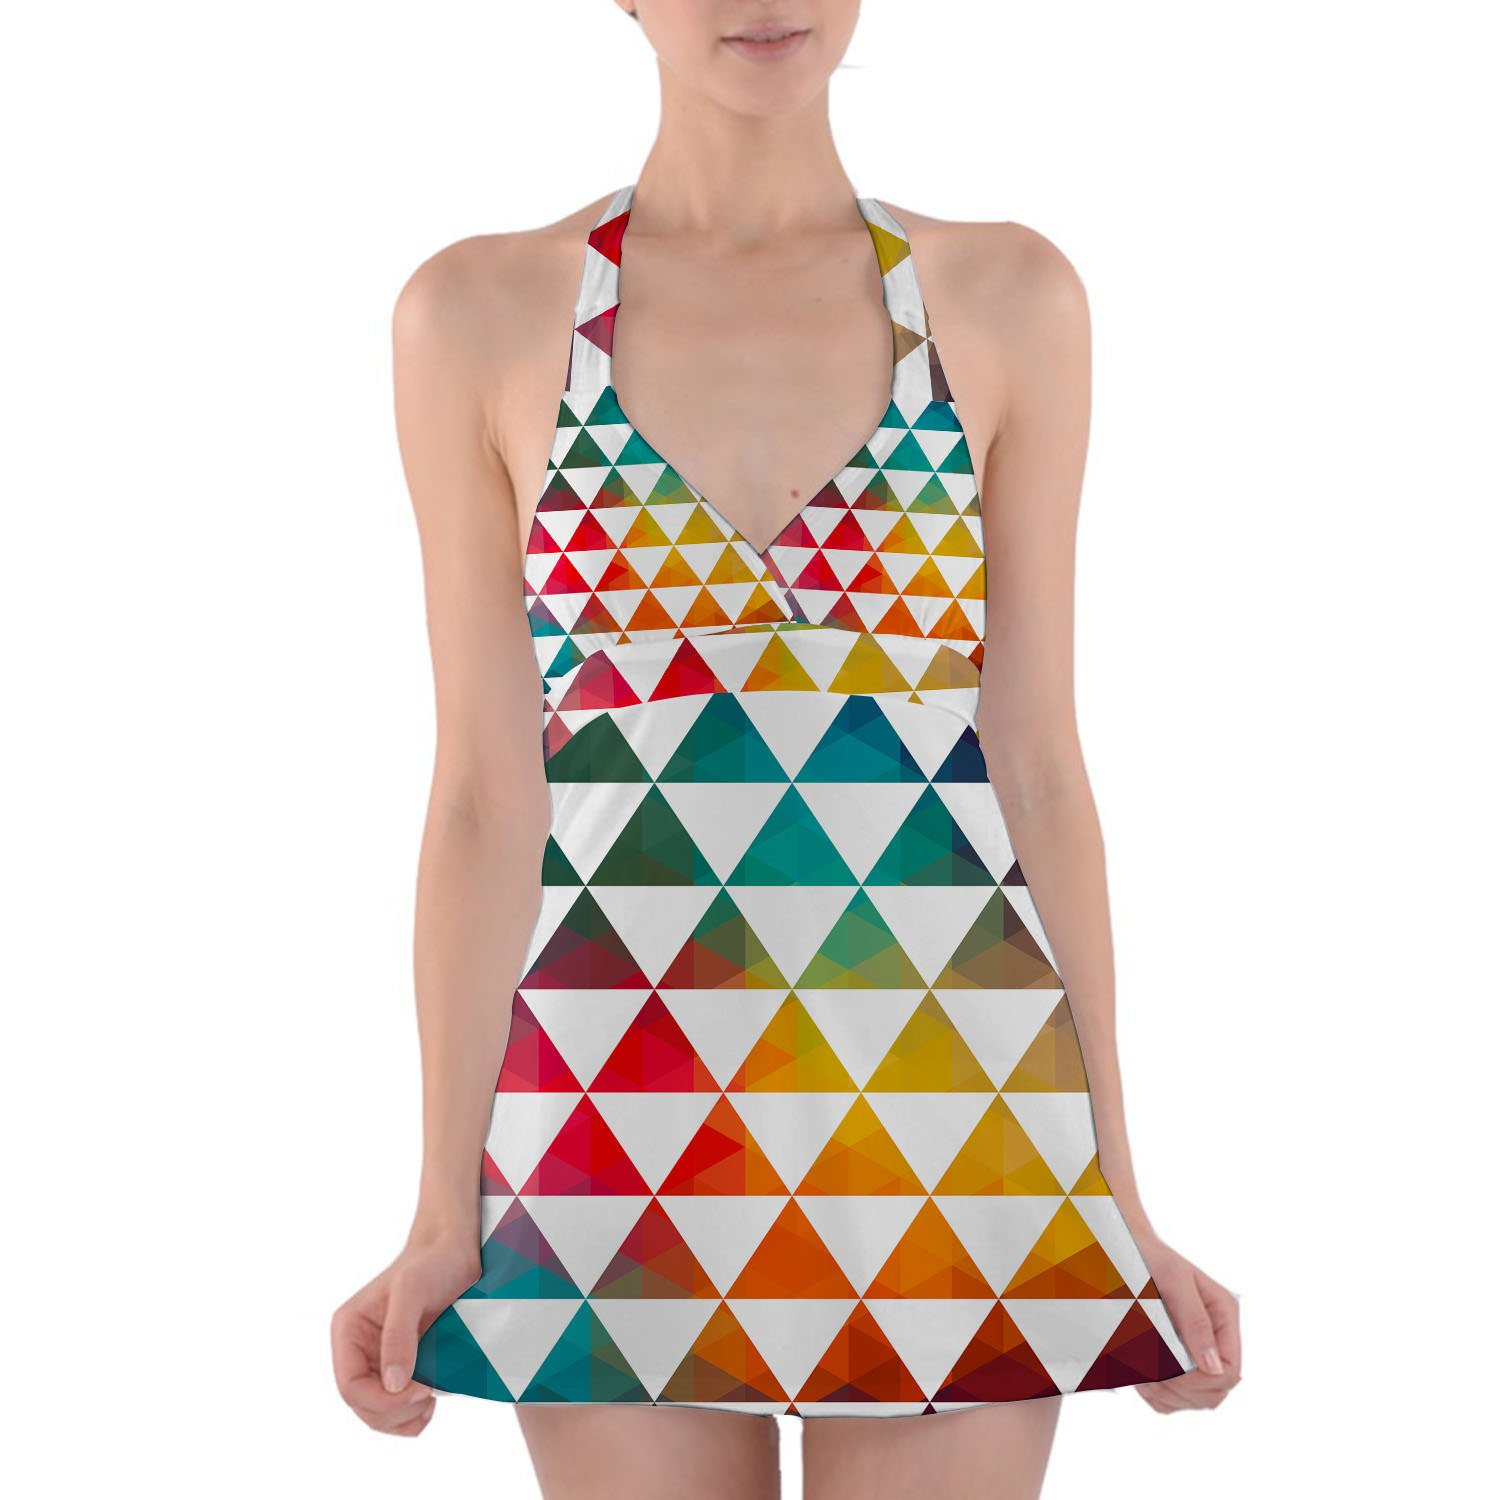 abf05174b Queen of Cases Geometric Triangle Rainbow Halter Swim Dress Swimsuit at  Amazon Women s Clothing store